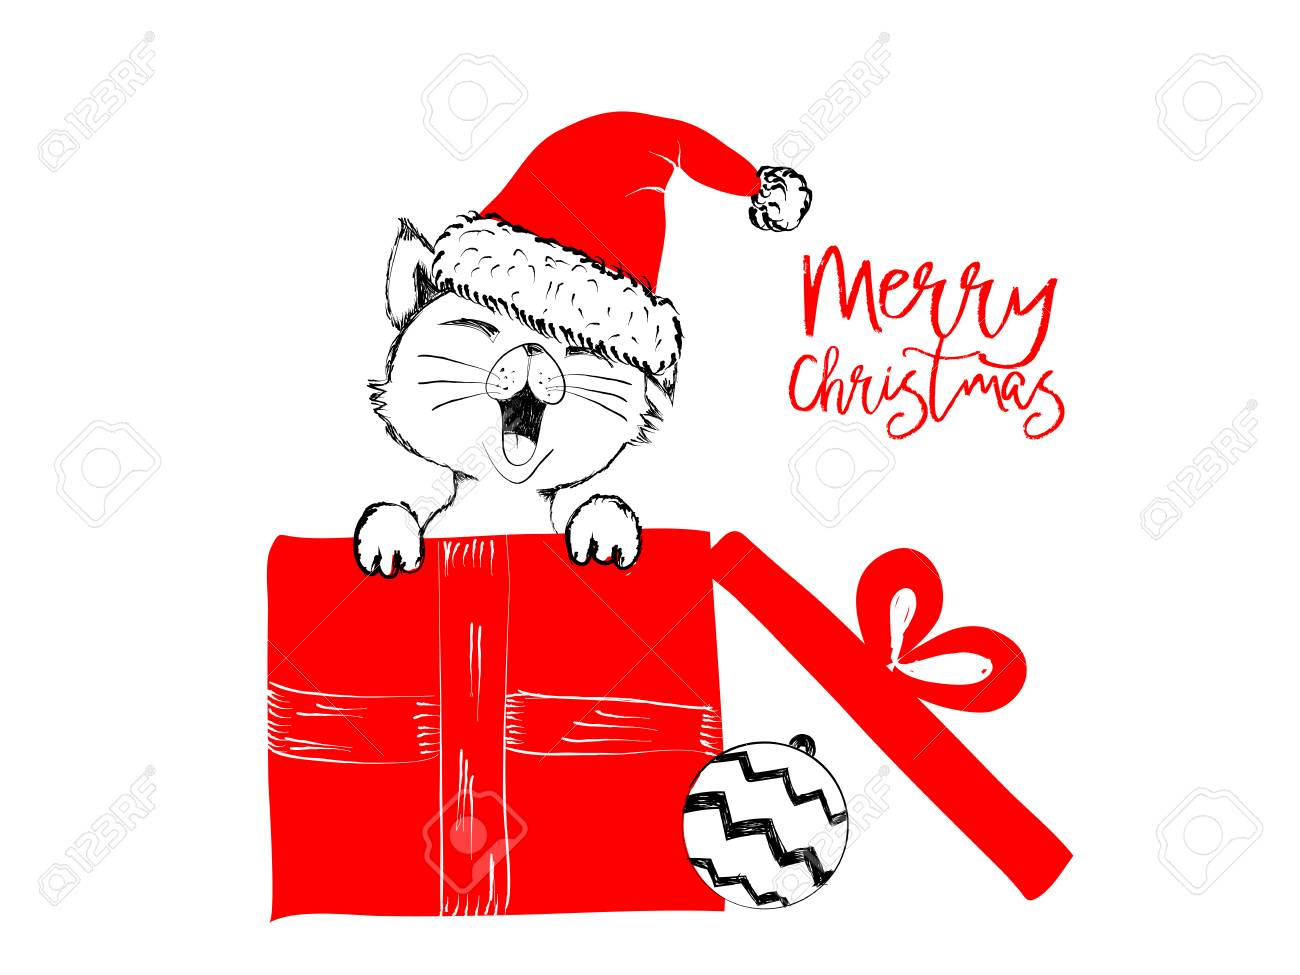 Merry Christmas greetings cards hand drawn with black and red ink pens for loving holidays. Stock Vector - 88894286